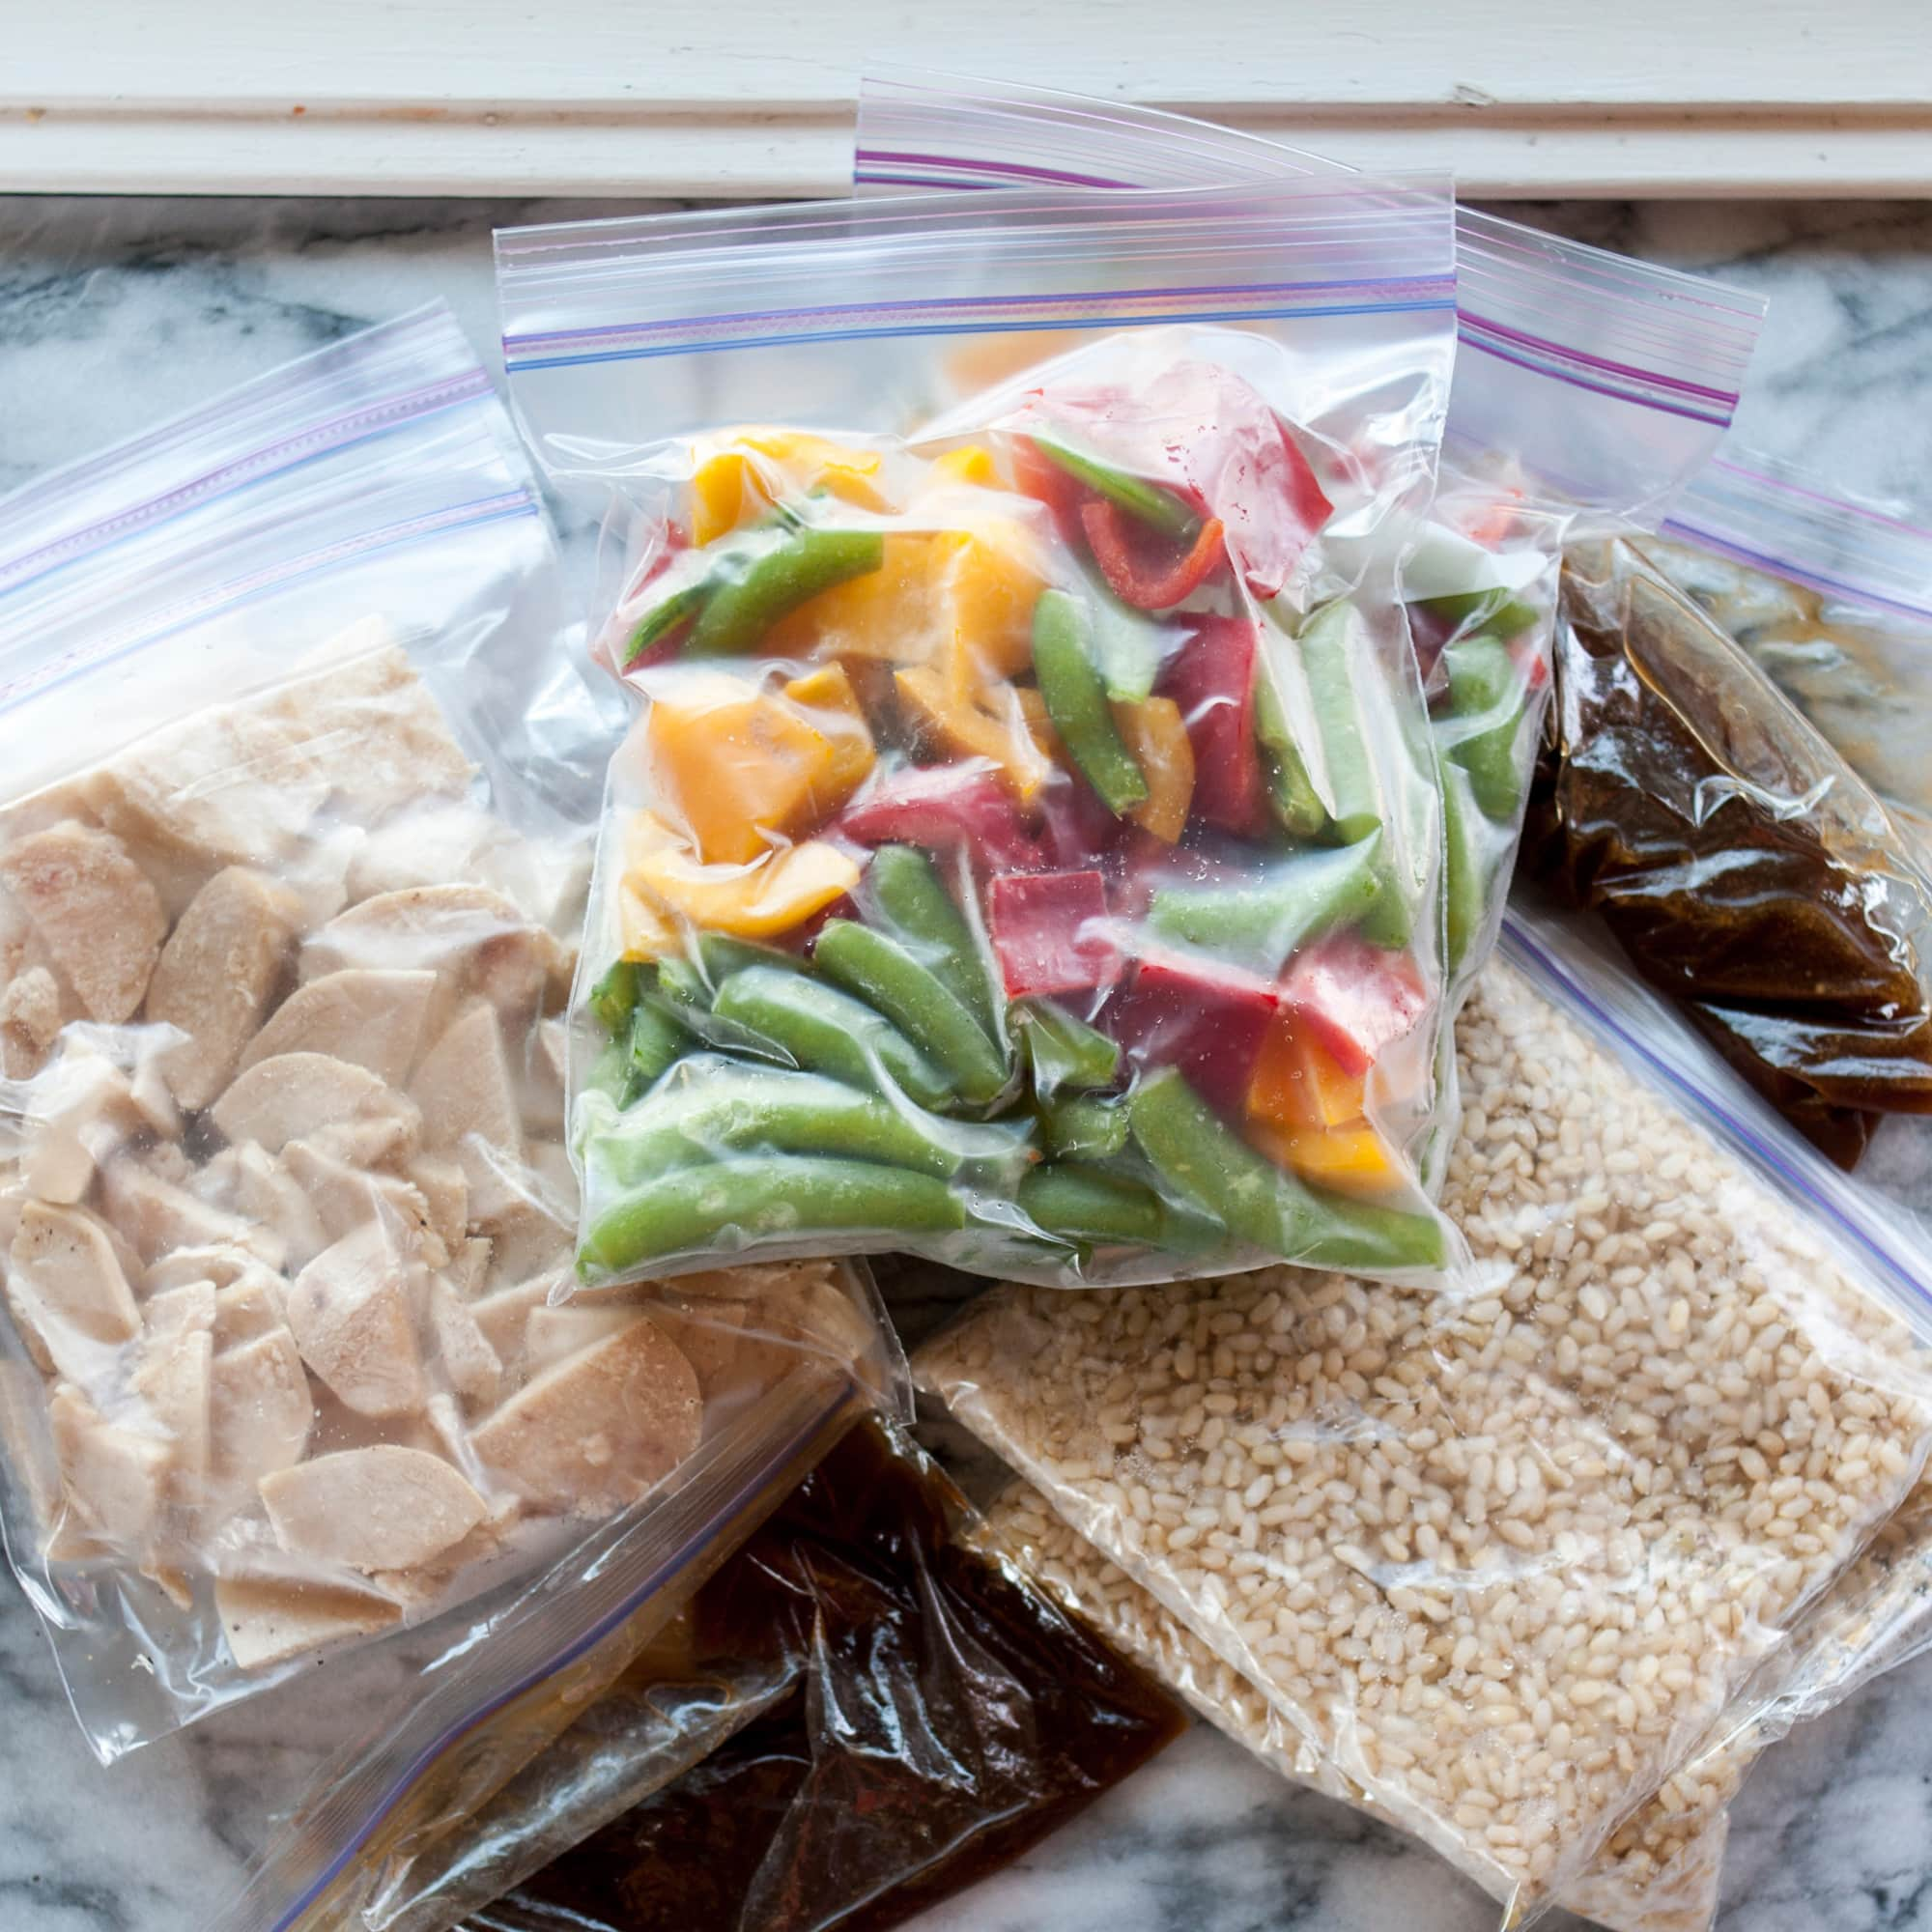 What Are Your Favorite Meals to Make Ahead and Freeze?